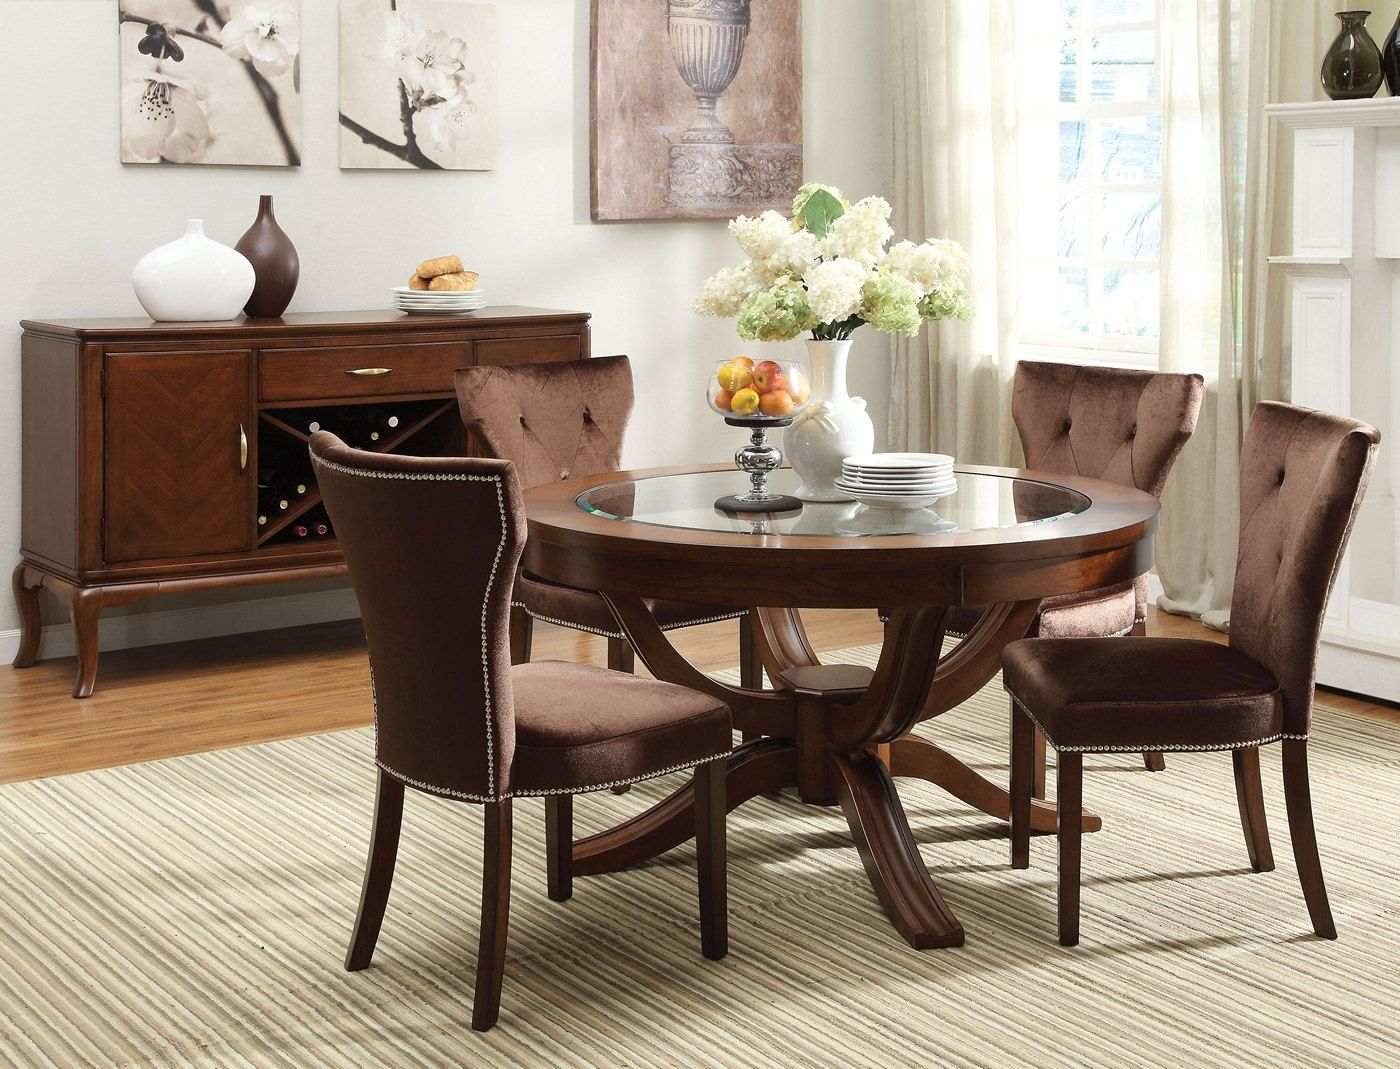 "Kayden Transitional Round 54"" Dining Table W/ Glass Top In"